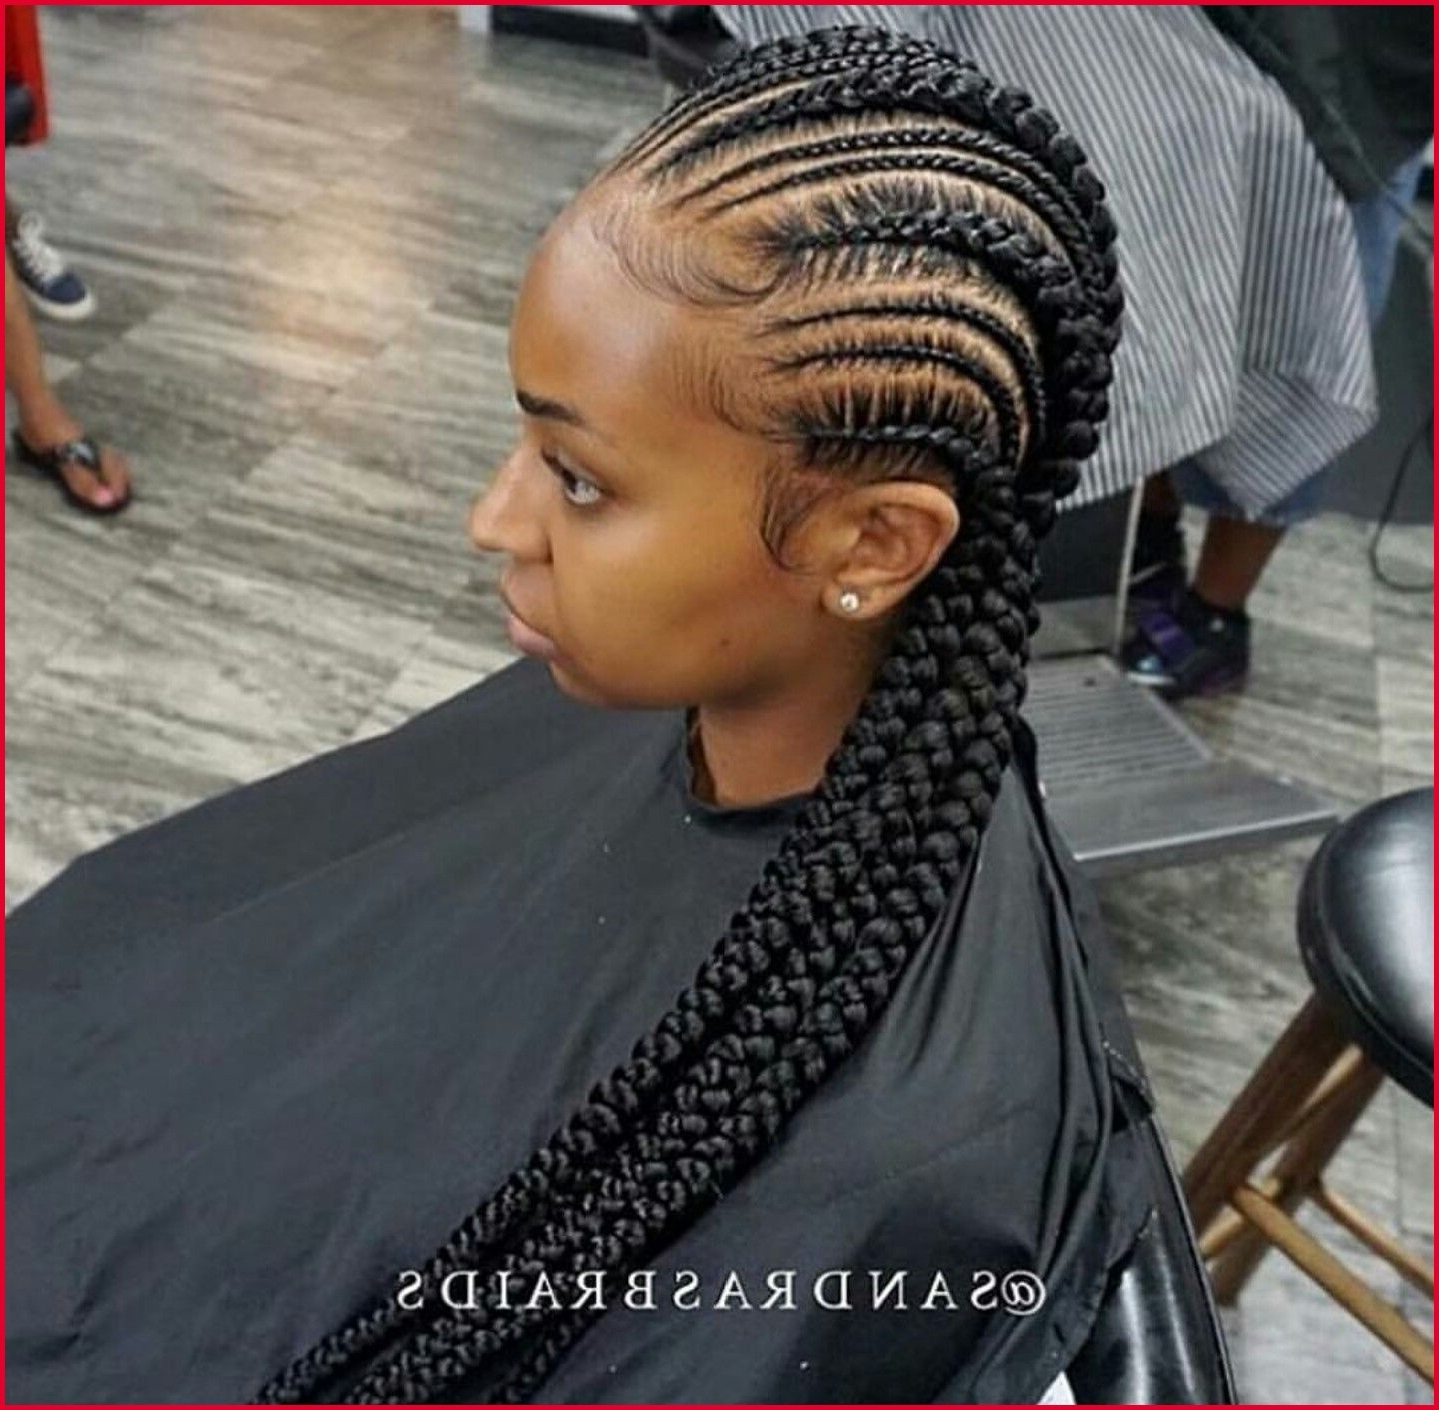 Trendy Small Cornrows Hairstyles In Small Cornrow Hairstyles 23186 Stunningly Cute Ghana Braids Styles (View 8 of 15)